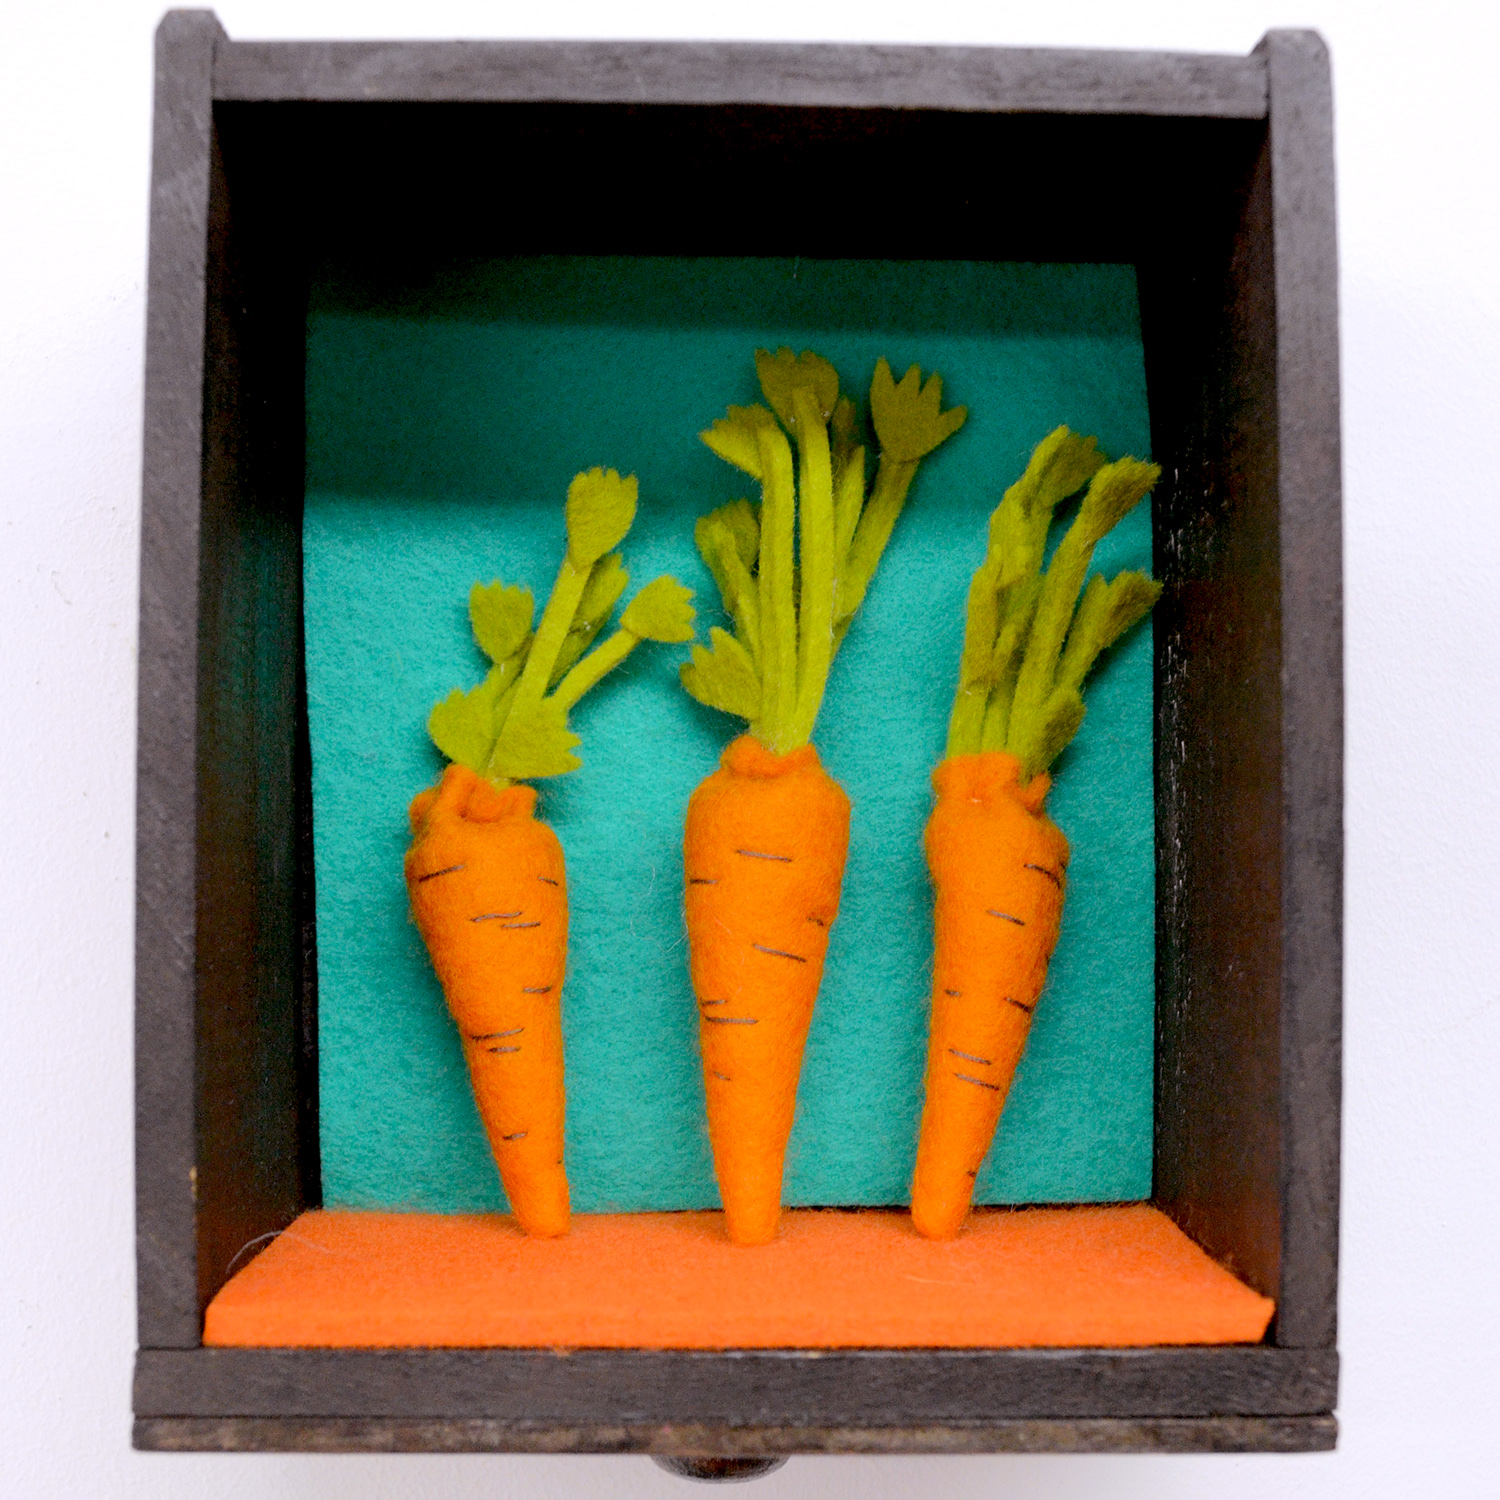 Play food felt carrots by Laura Mirjami | Mirjami Design